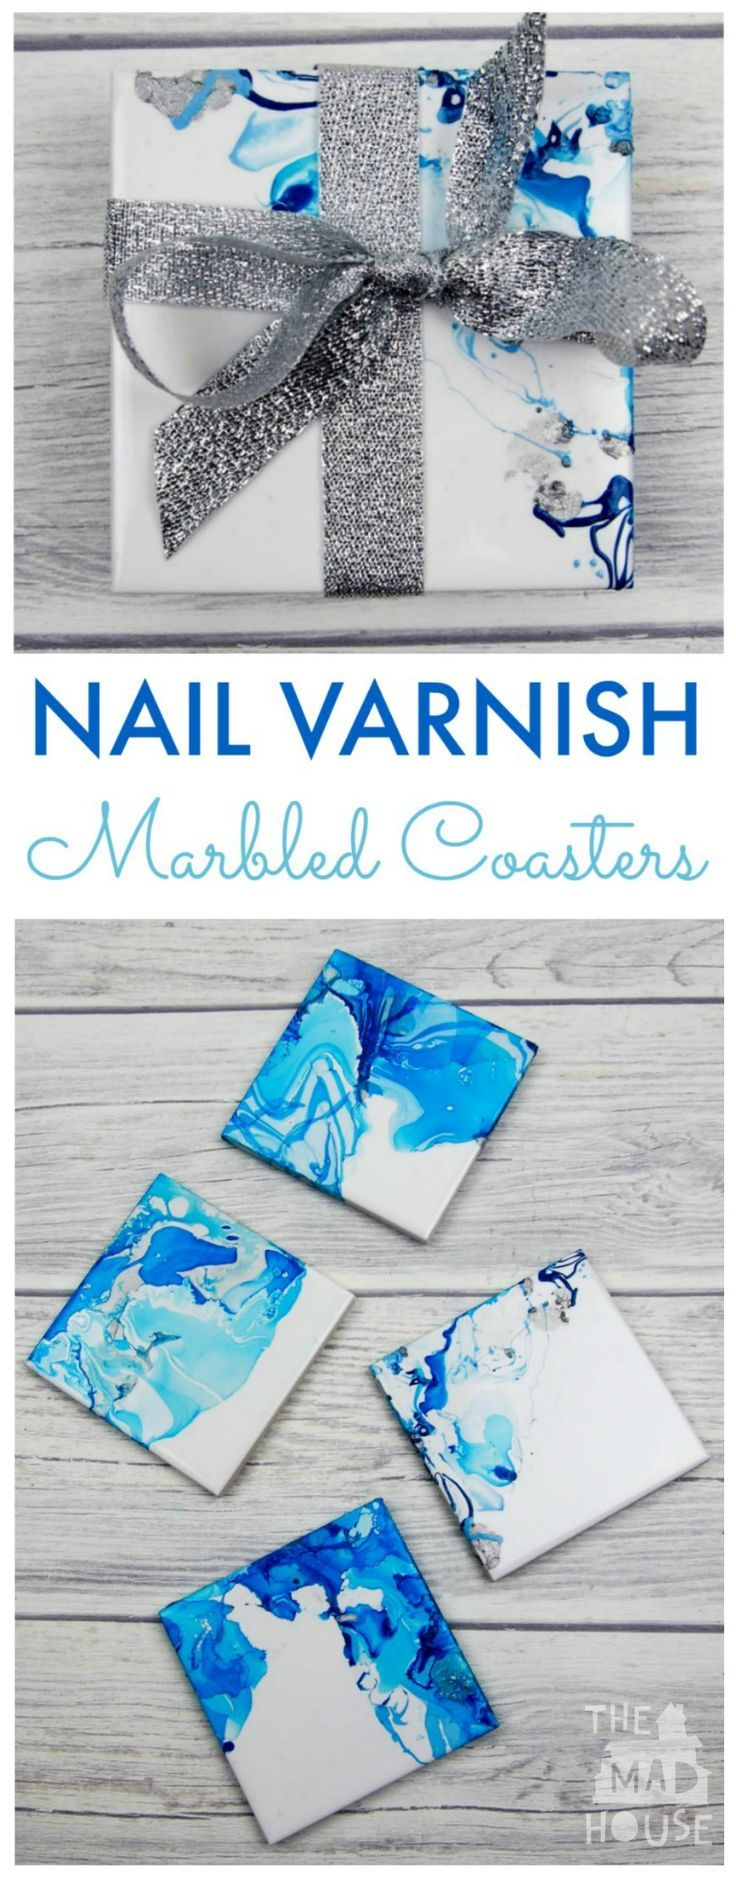 How to make Nail Varnish Marbled Coasters. These beautiful marbled coasters are beautiful as so simple to make.  A great homemade gift and DIY craft